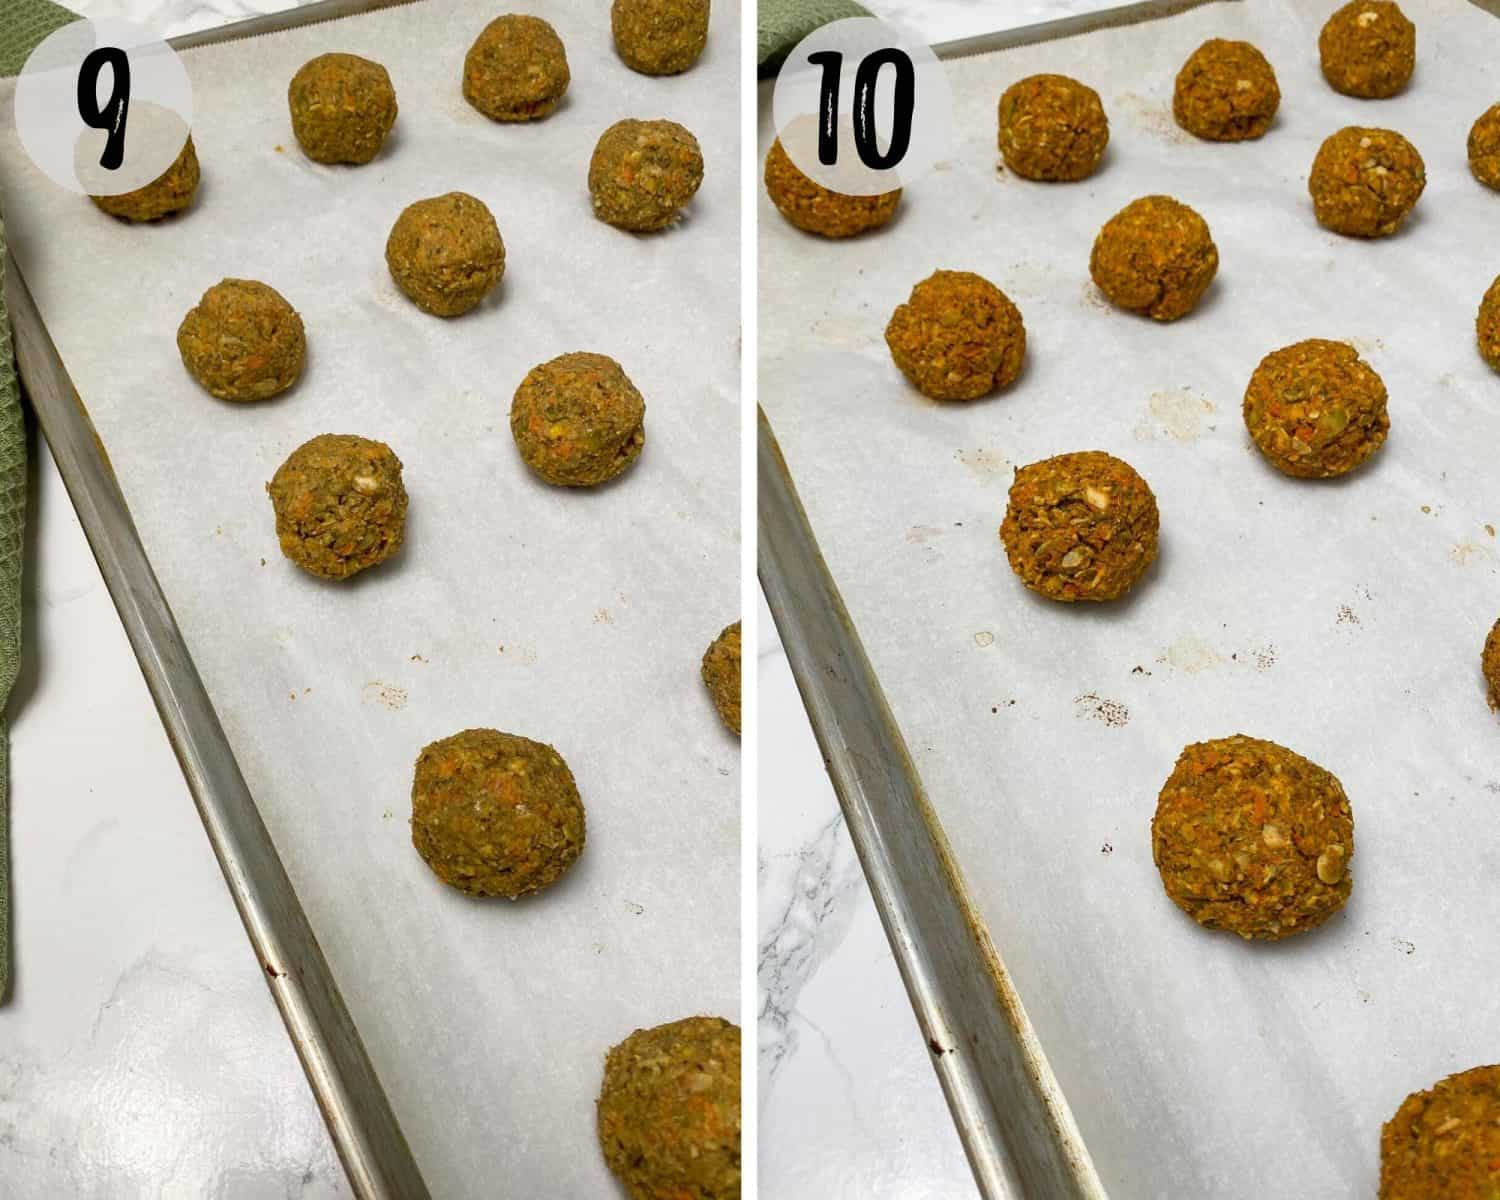 vegan meatballs on baking tray with parchment paper before and after baking